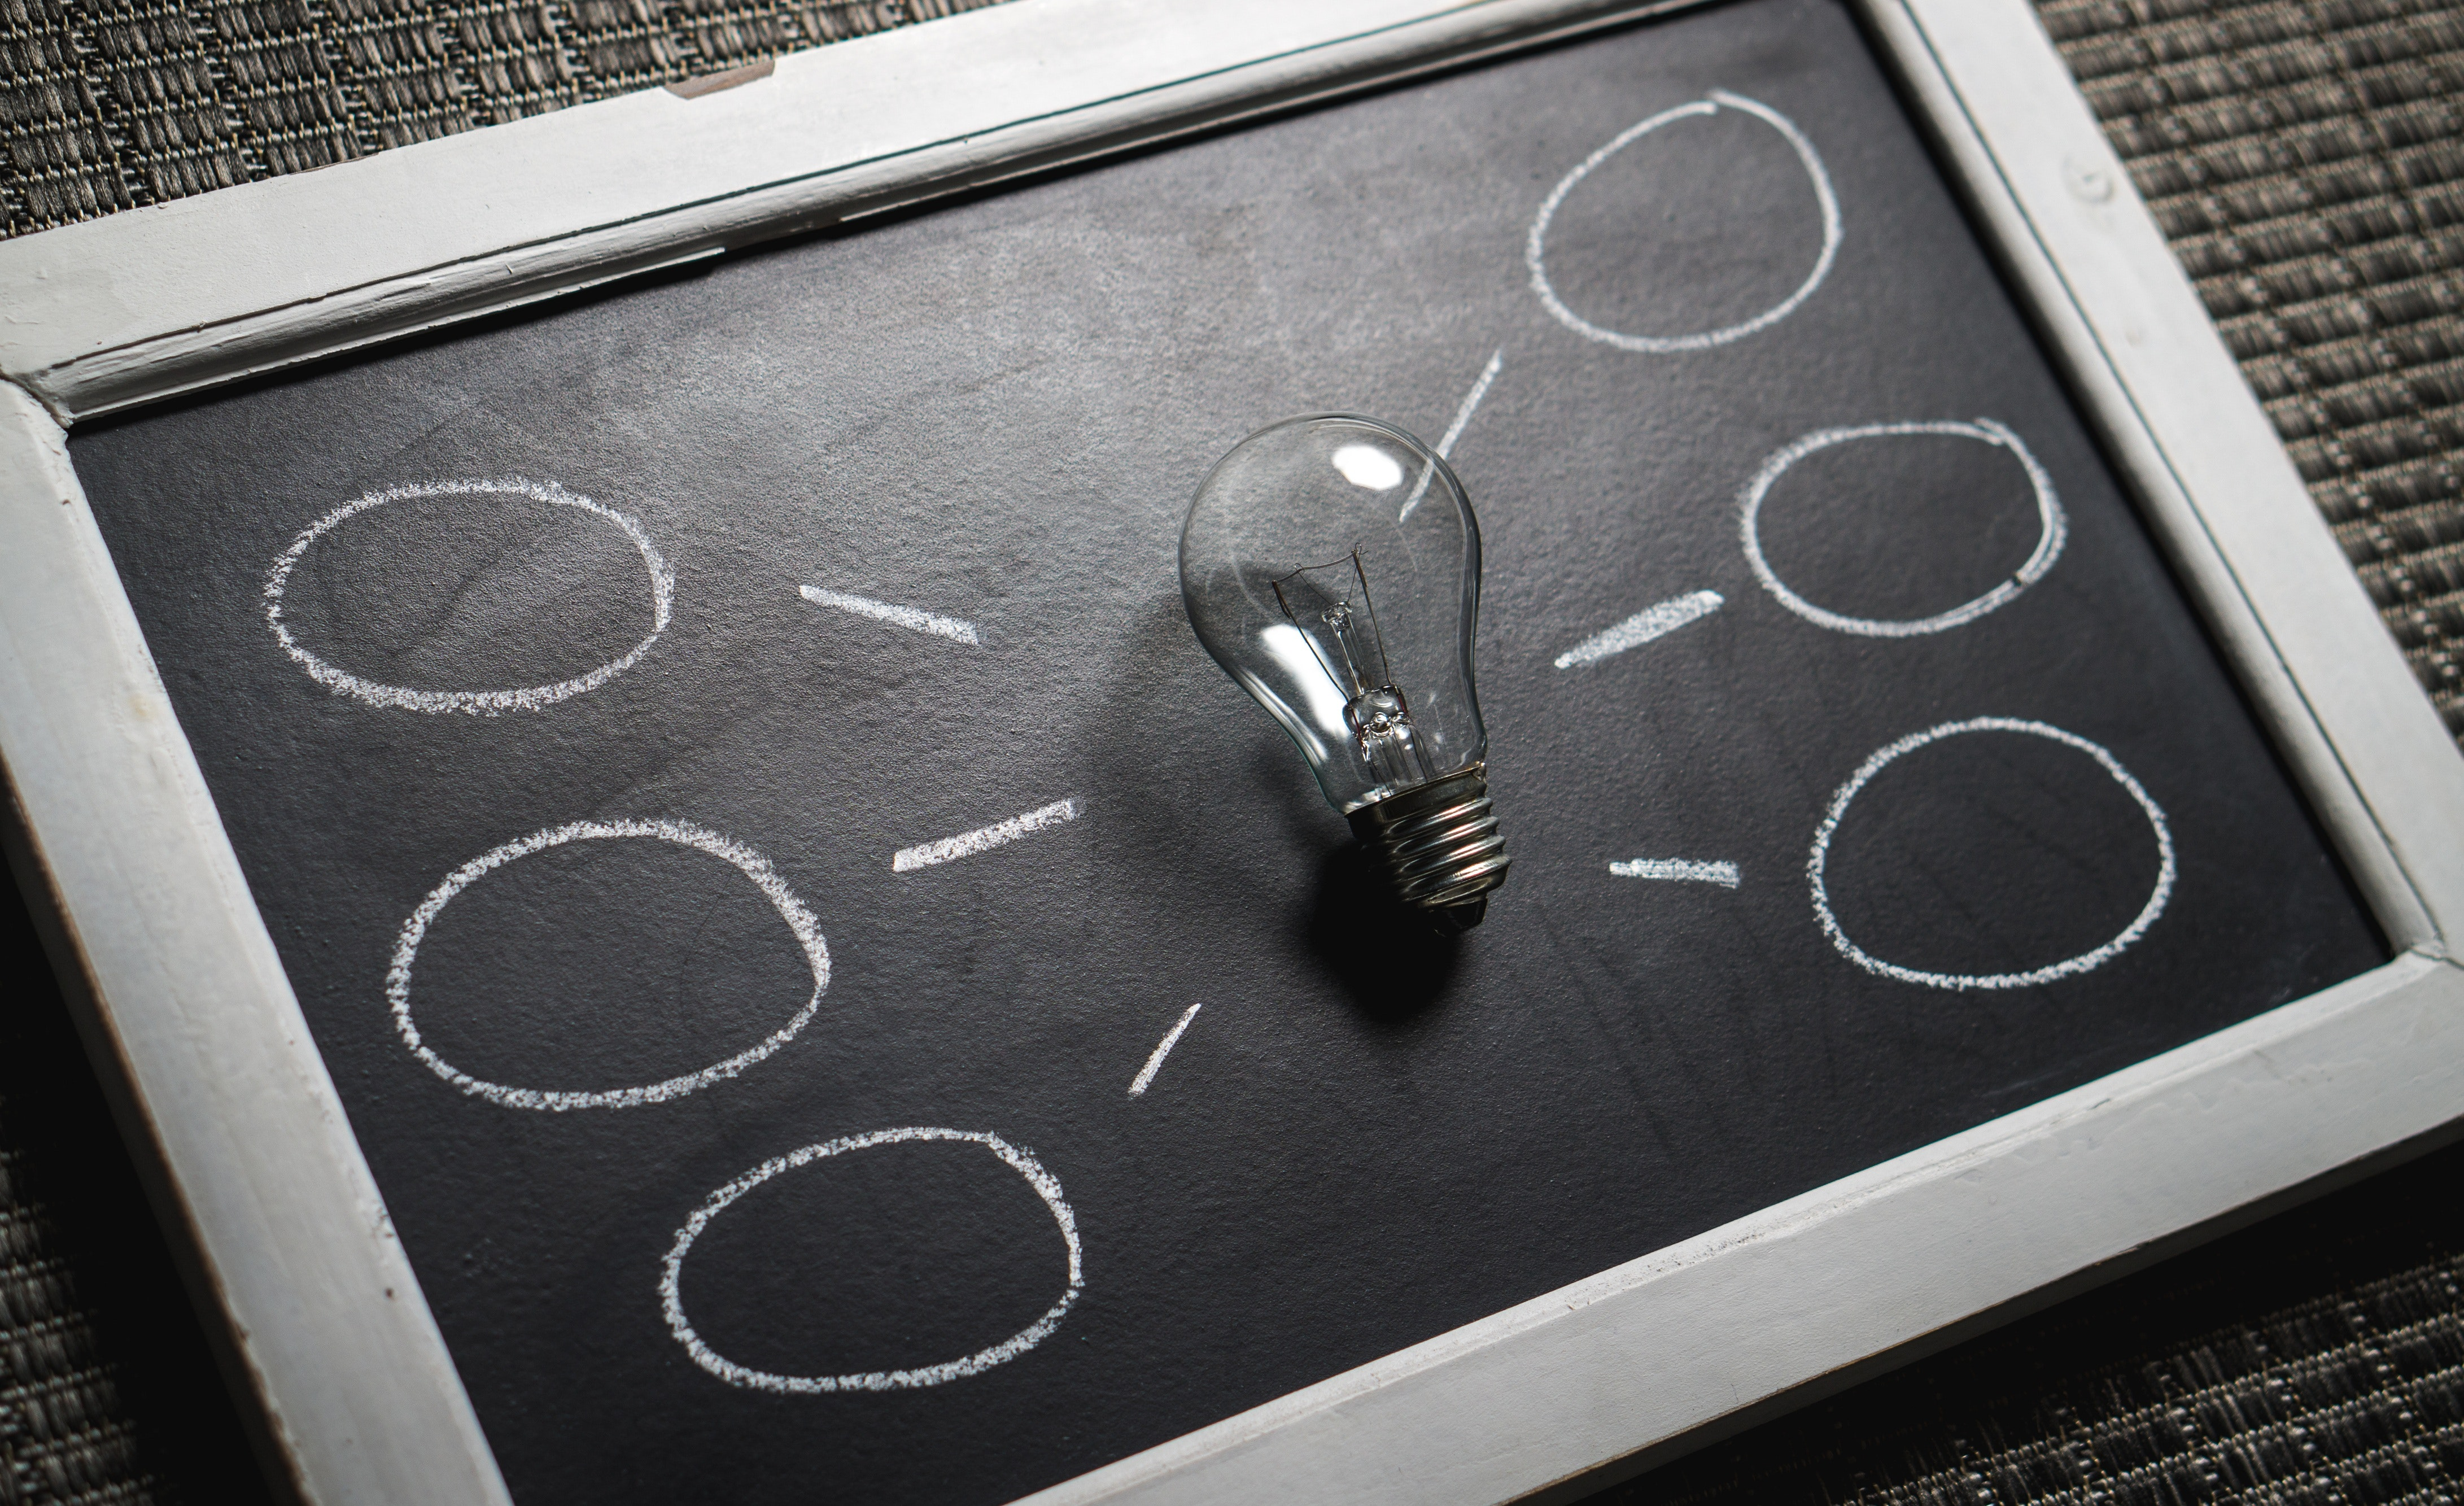 How to Improve Your Organization's Business Processes